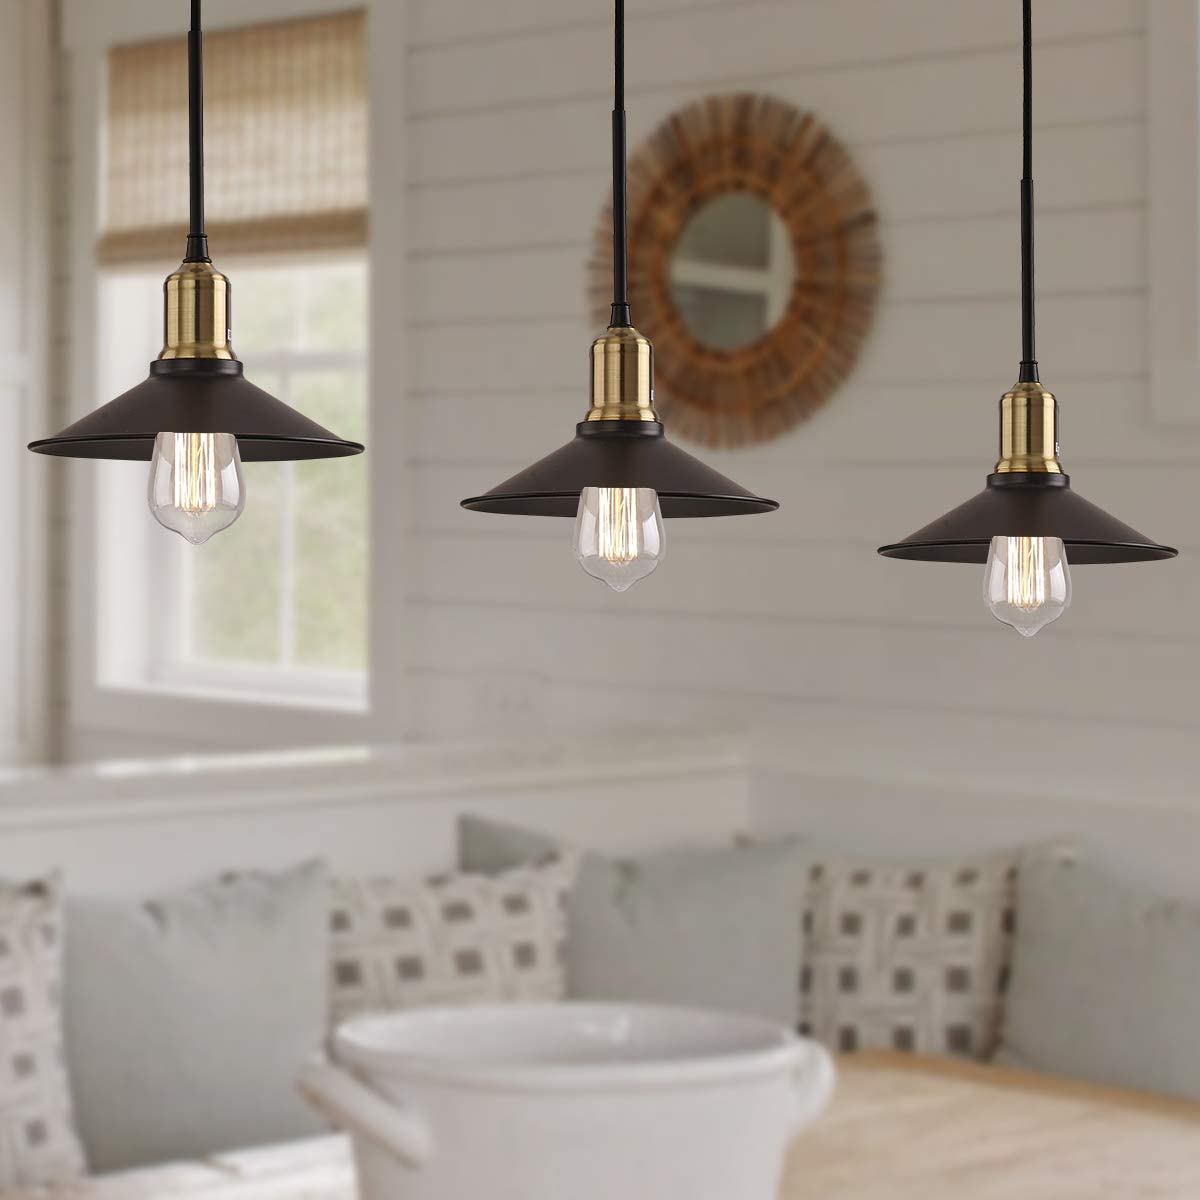 Chandelier Lighting 3 Light Pendant Lighting Modern Starburst Chandelier Mid Century Pendant Lighting Brushed Nickel Ceiling Light Fixture for Kitchen Dining Room Living Room Foyer